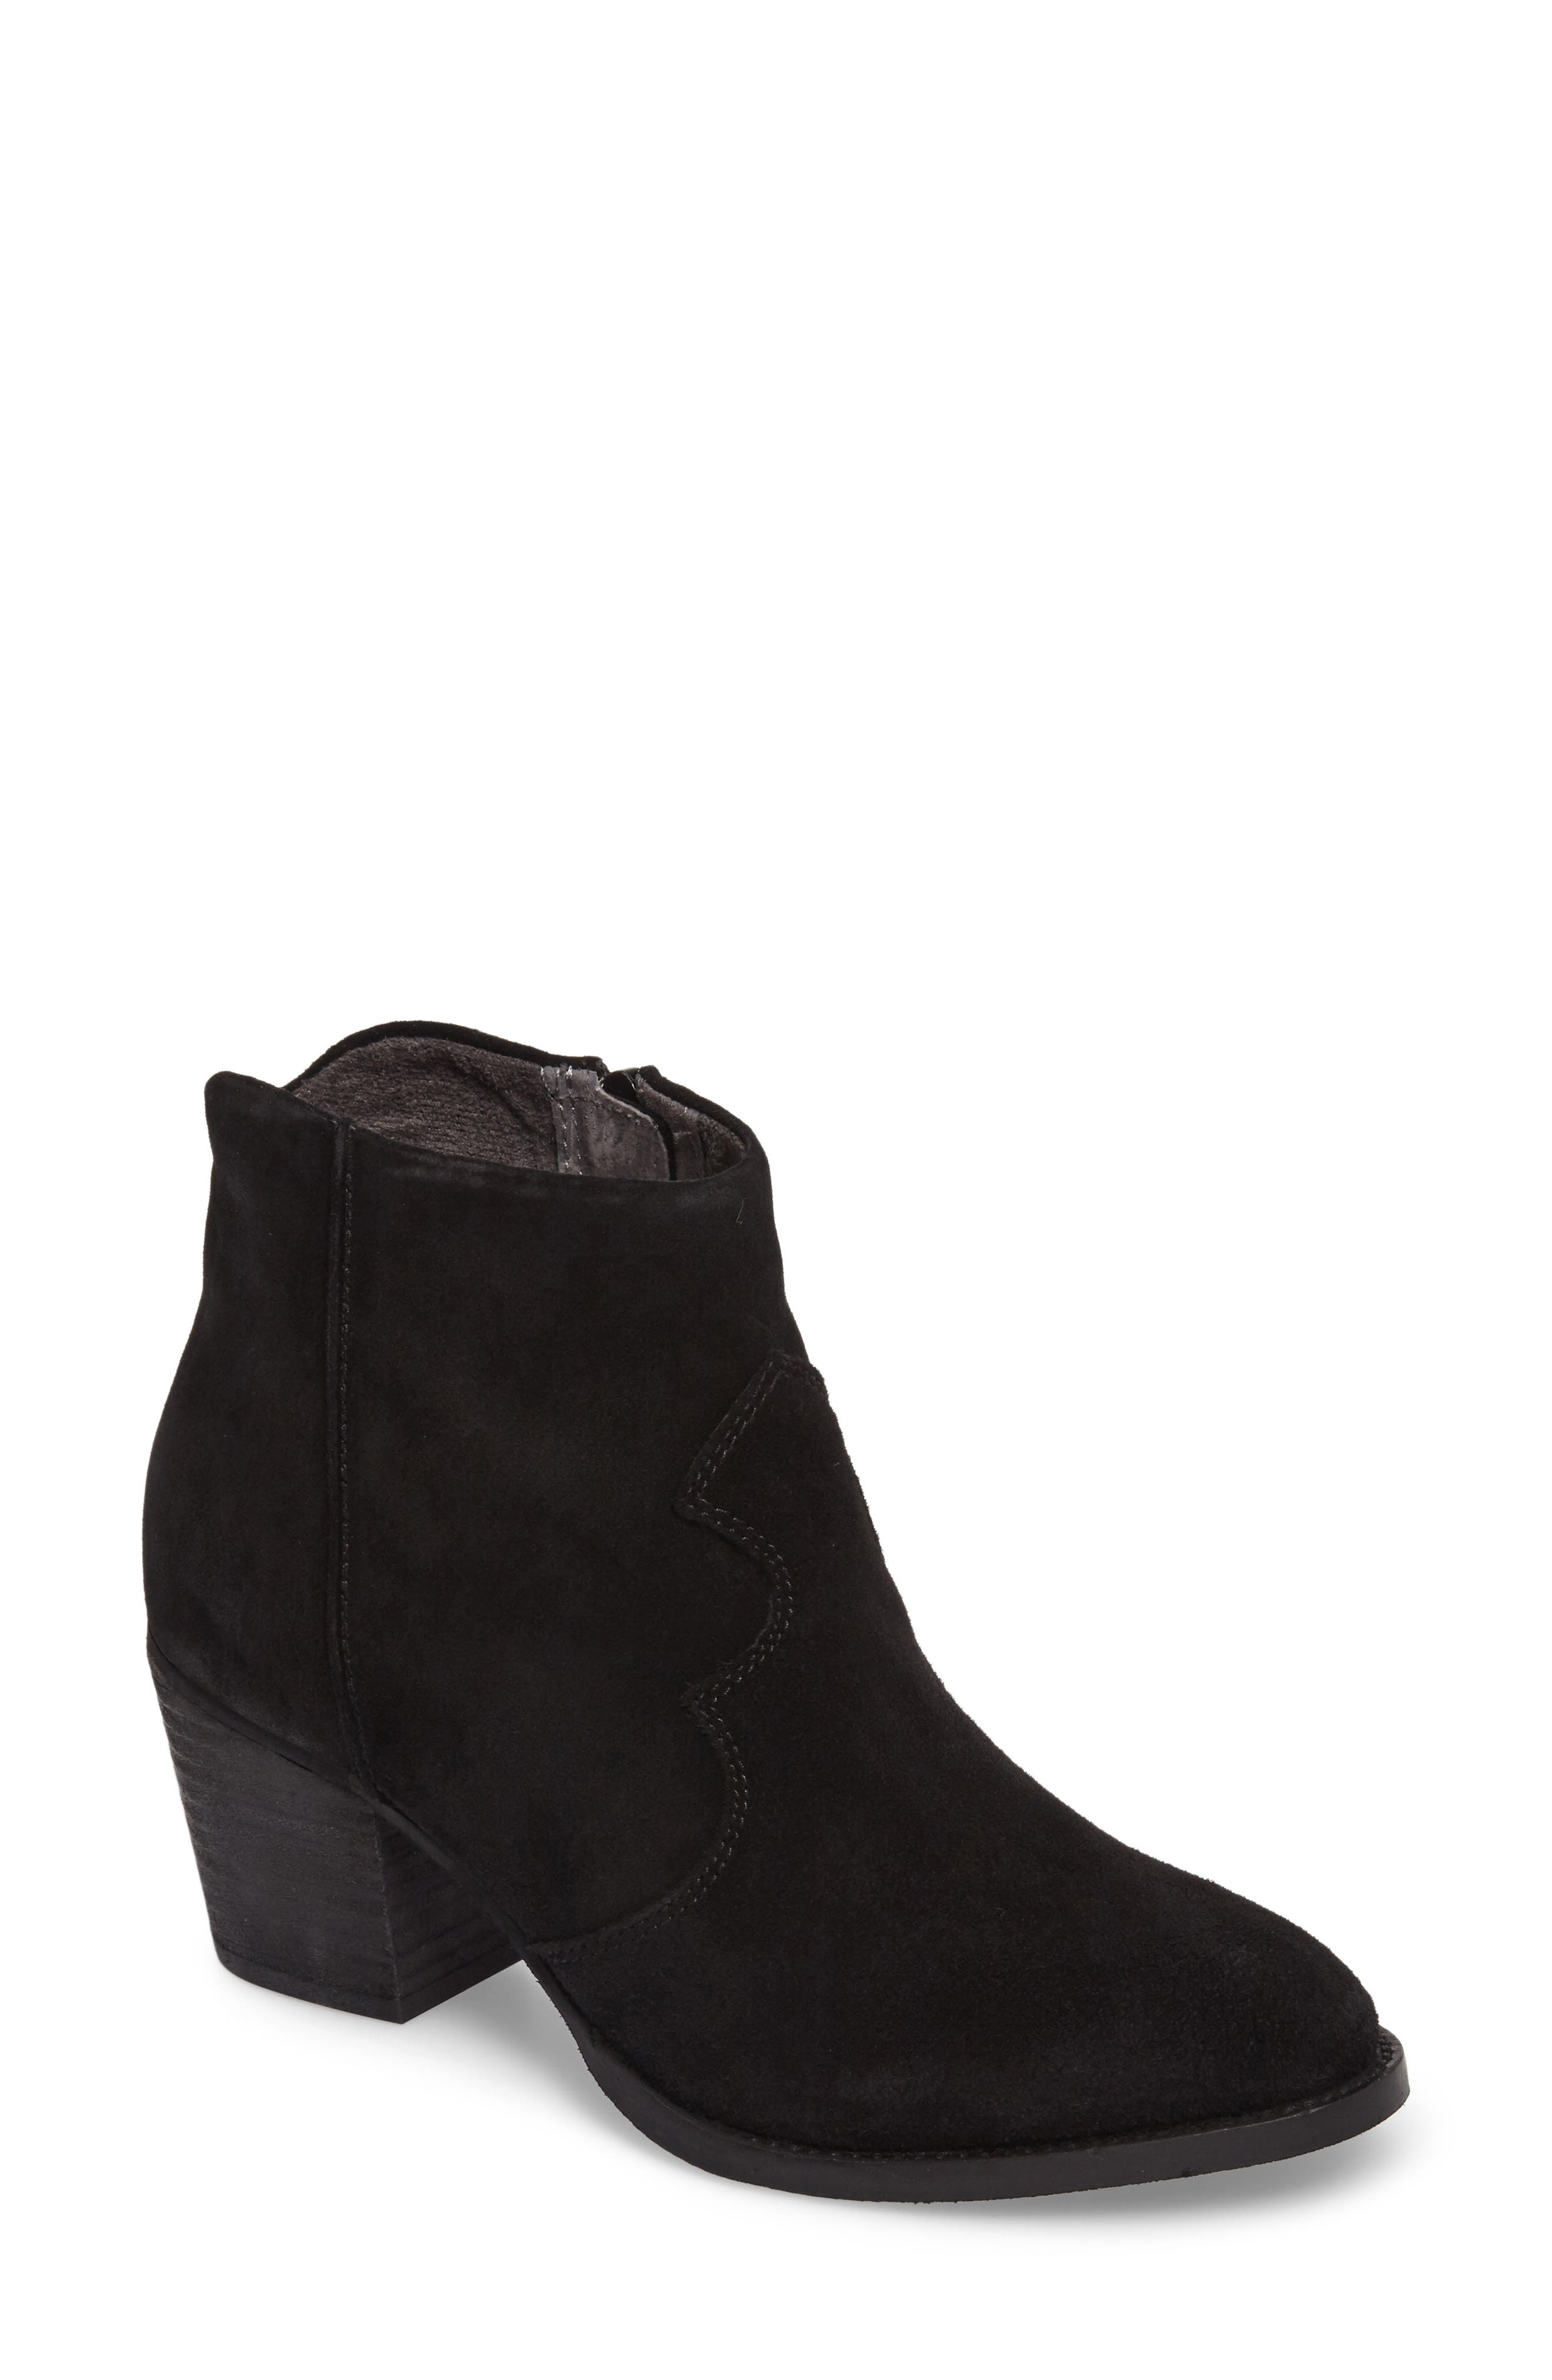 Jitters Bootie,                         Main,                         color, 001